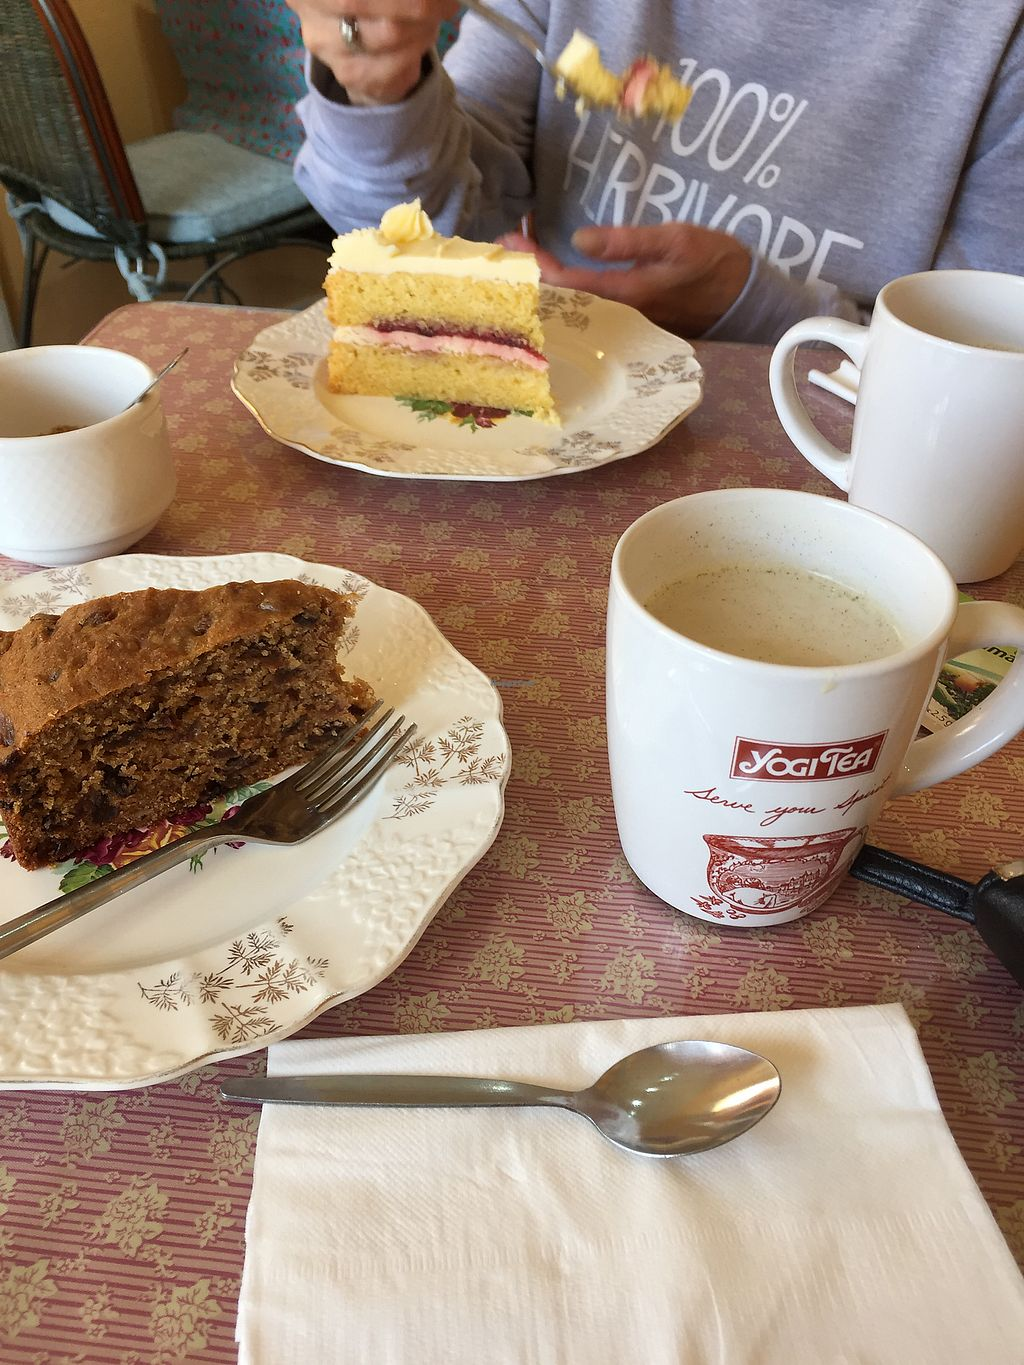 """Photo of The Vegan Way Cafe  by <a href=""""/members/profile/FreyaErickson"""">FreyaErickson</a> <br/>cake! <br/> August 29, 2017  - <a href='/contact/abuse/image/89817/298757'>Report</a>"""